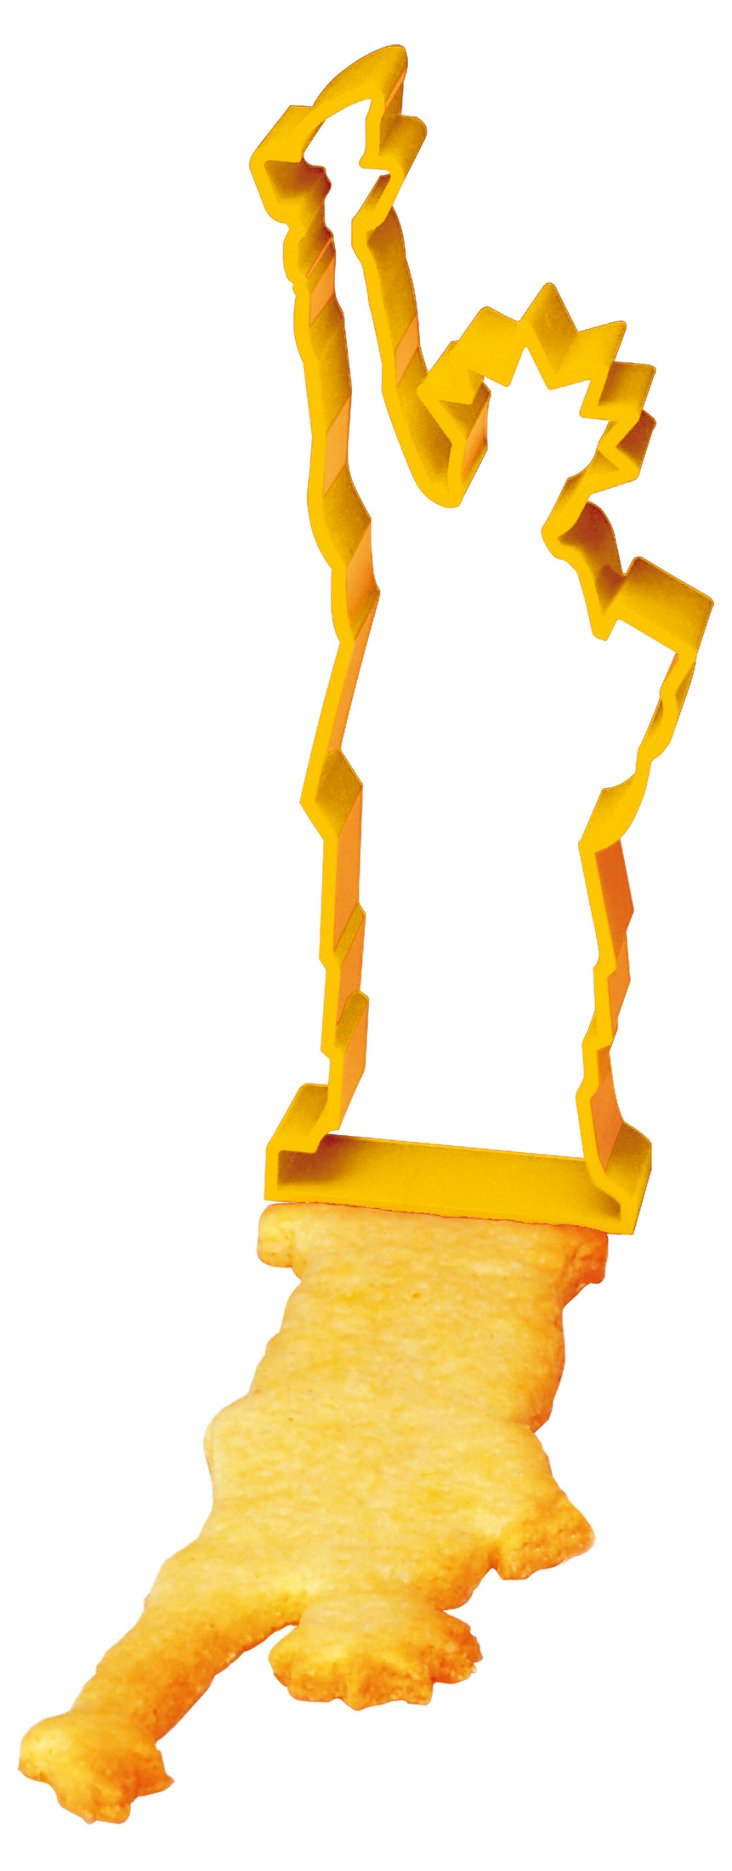 S/3 New York Cookie Cutters, Yellow